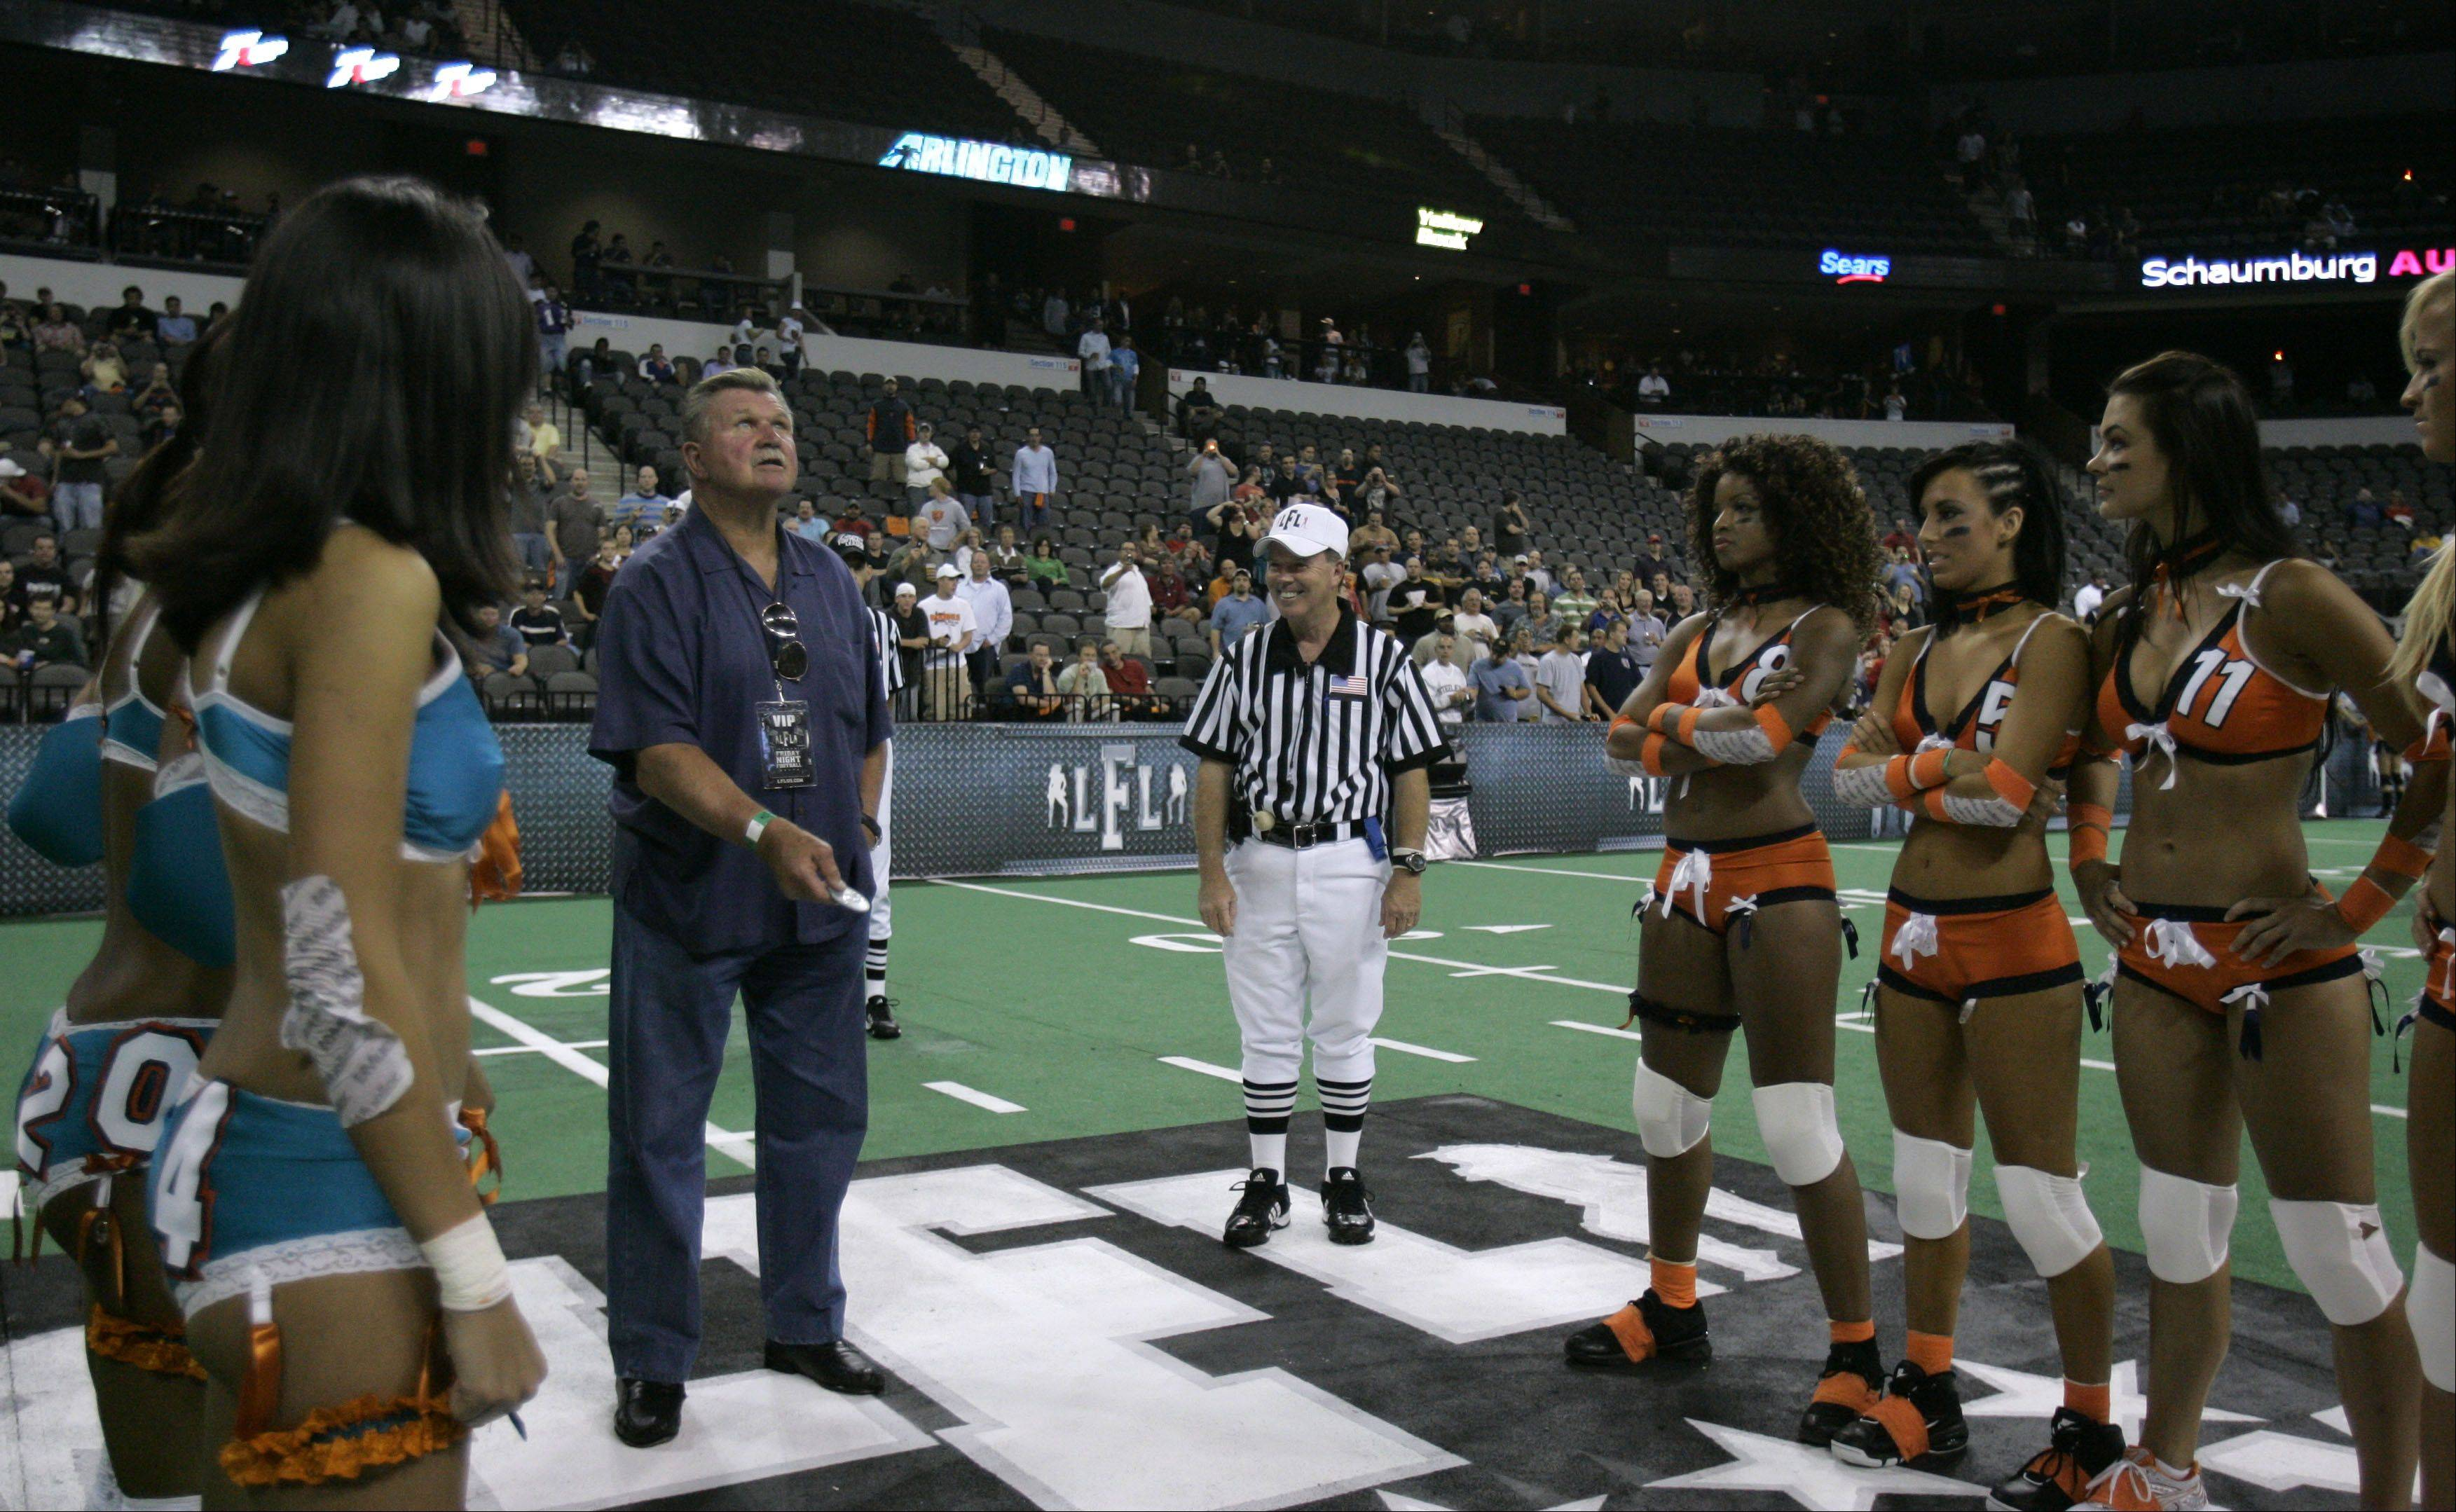 Lending his Ditka fame to the Lingerie Football League, Mike Ditka gets ready to toss the coin before the Chicago Bliss vs. Miami Caliente season opener in 2009.